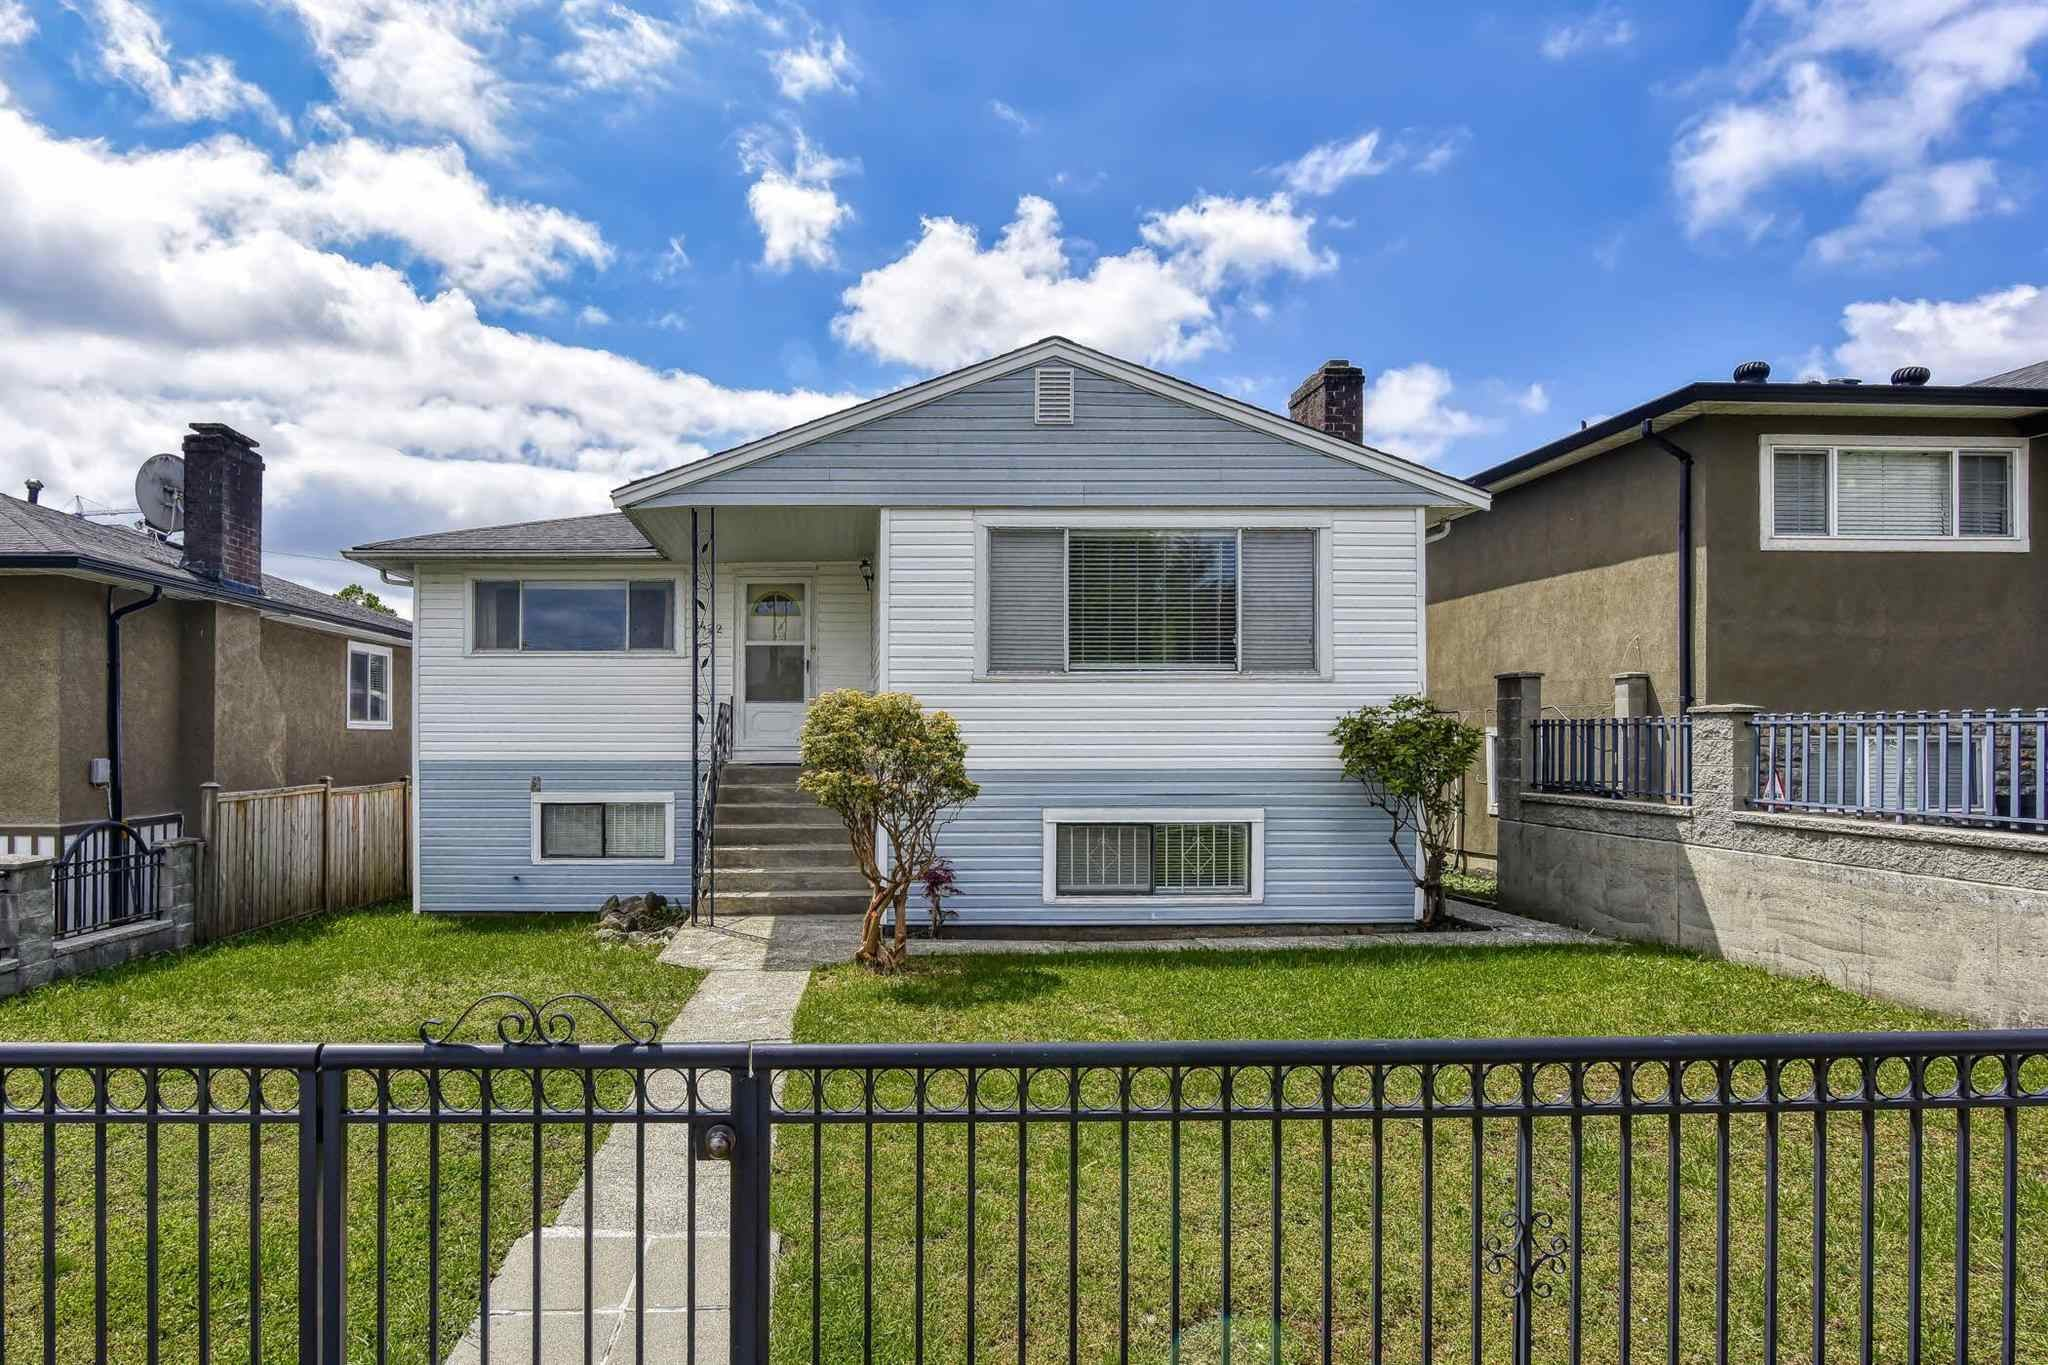 3422 TANNER STREET - Collingwood VE House/Single Family for sale, 6 Bedrooms (R2605474) - #1